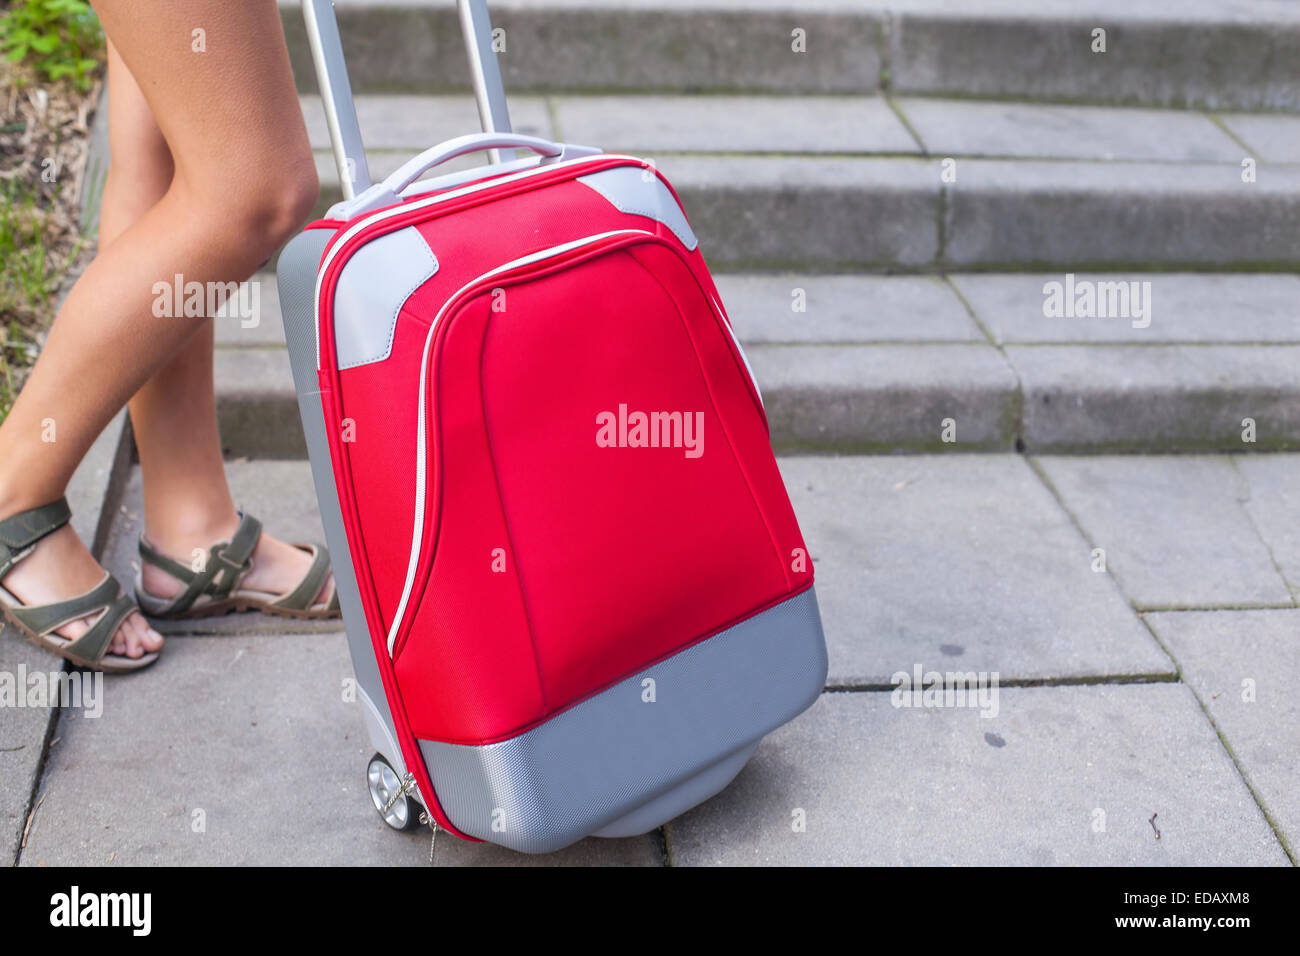 Closeup of the feet of a young girl near red travel suitcase. - Stock Image